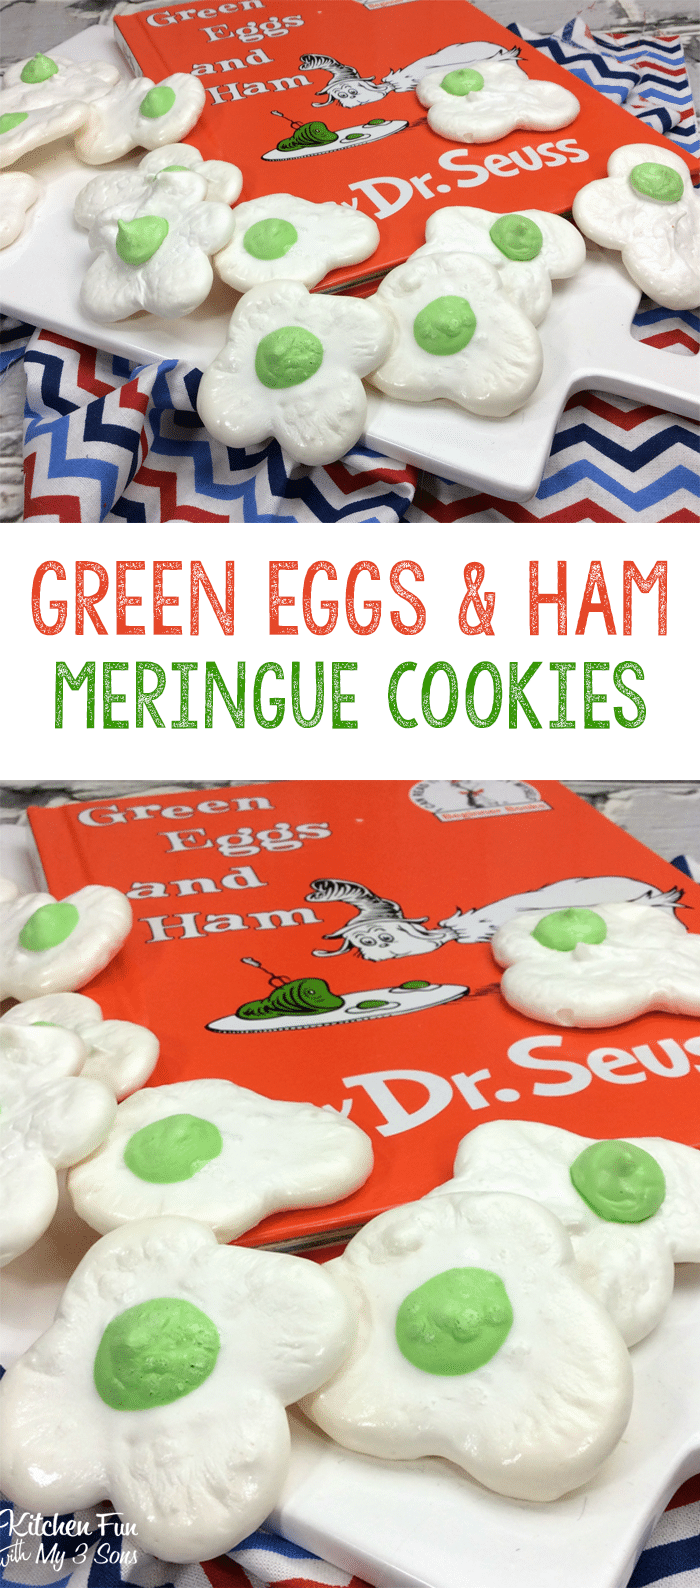 Dr Seuss Green Egg Meringue Cookies